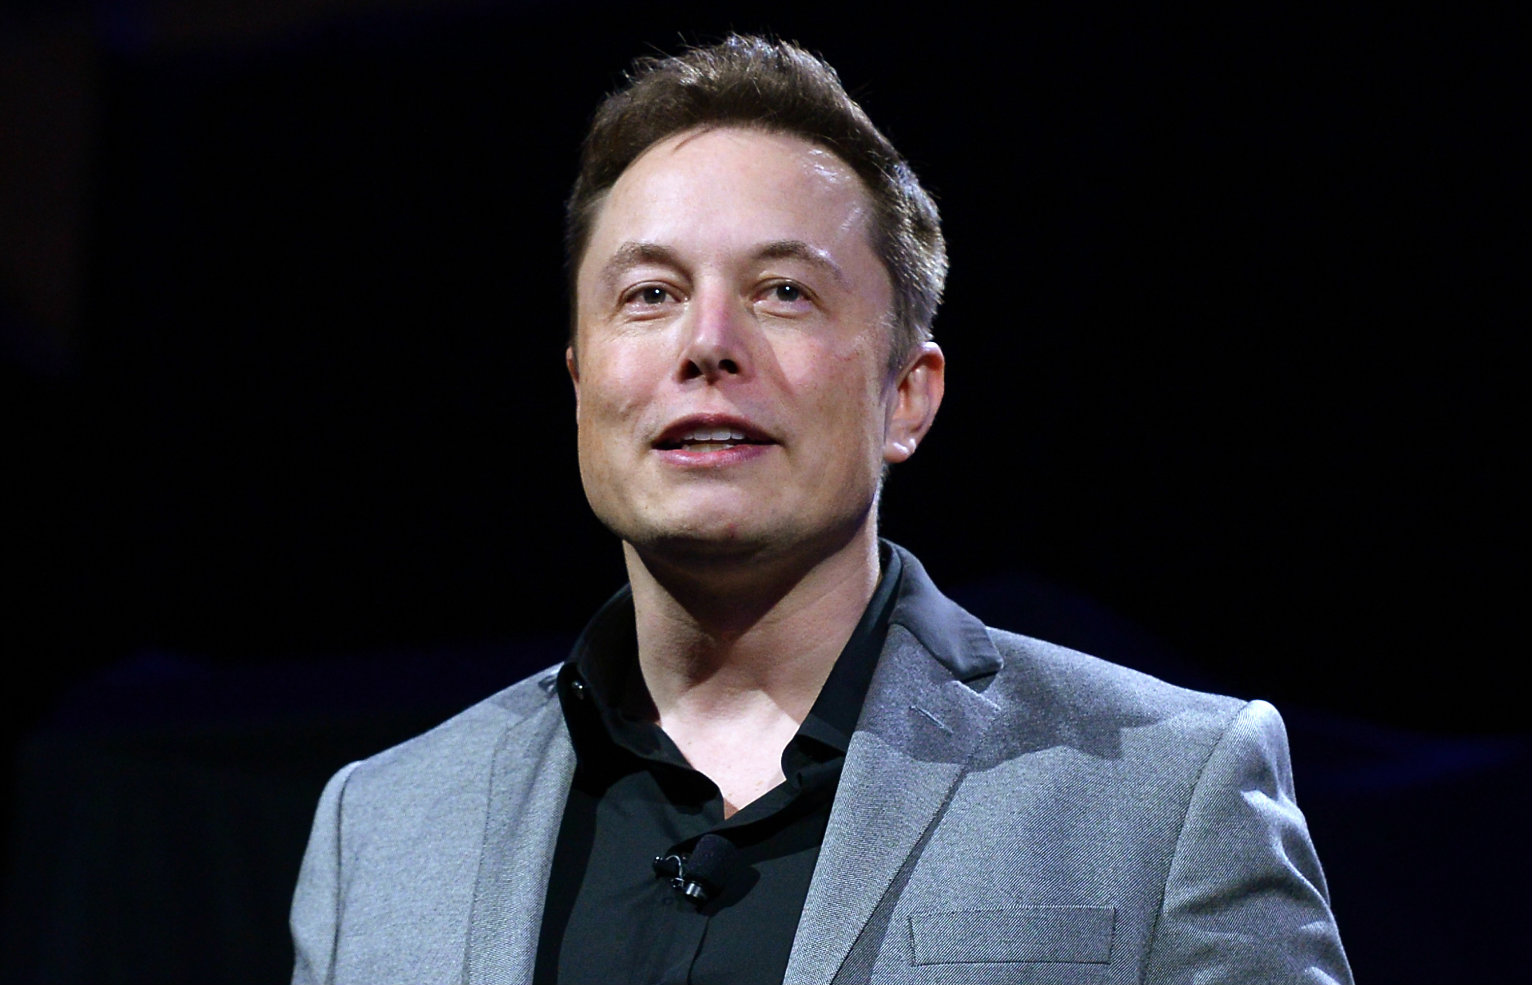 Elon Musk tries to manipulate Dogecoin's price again but fails